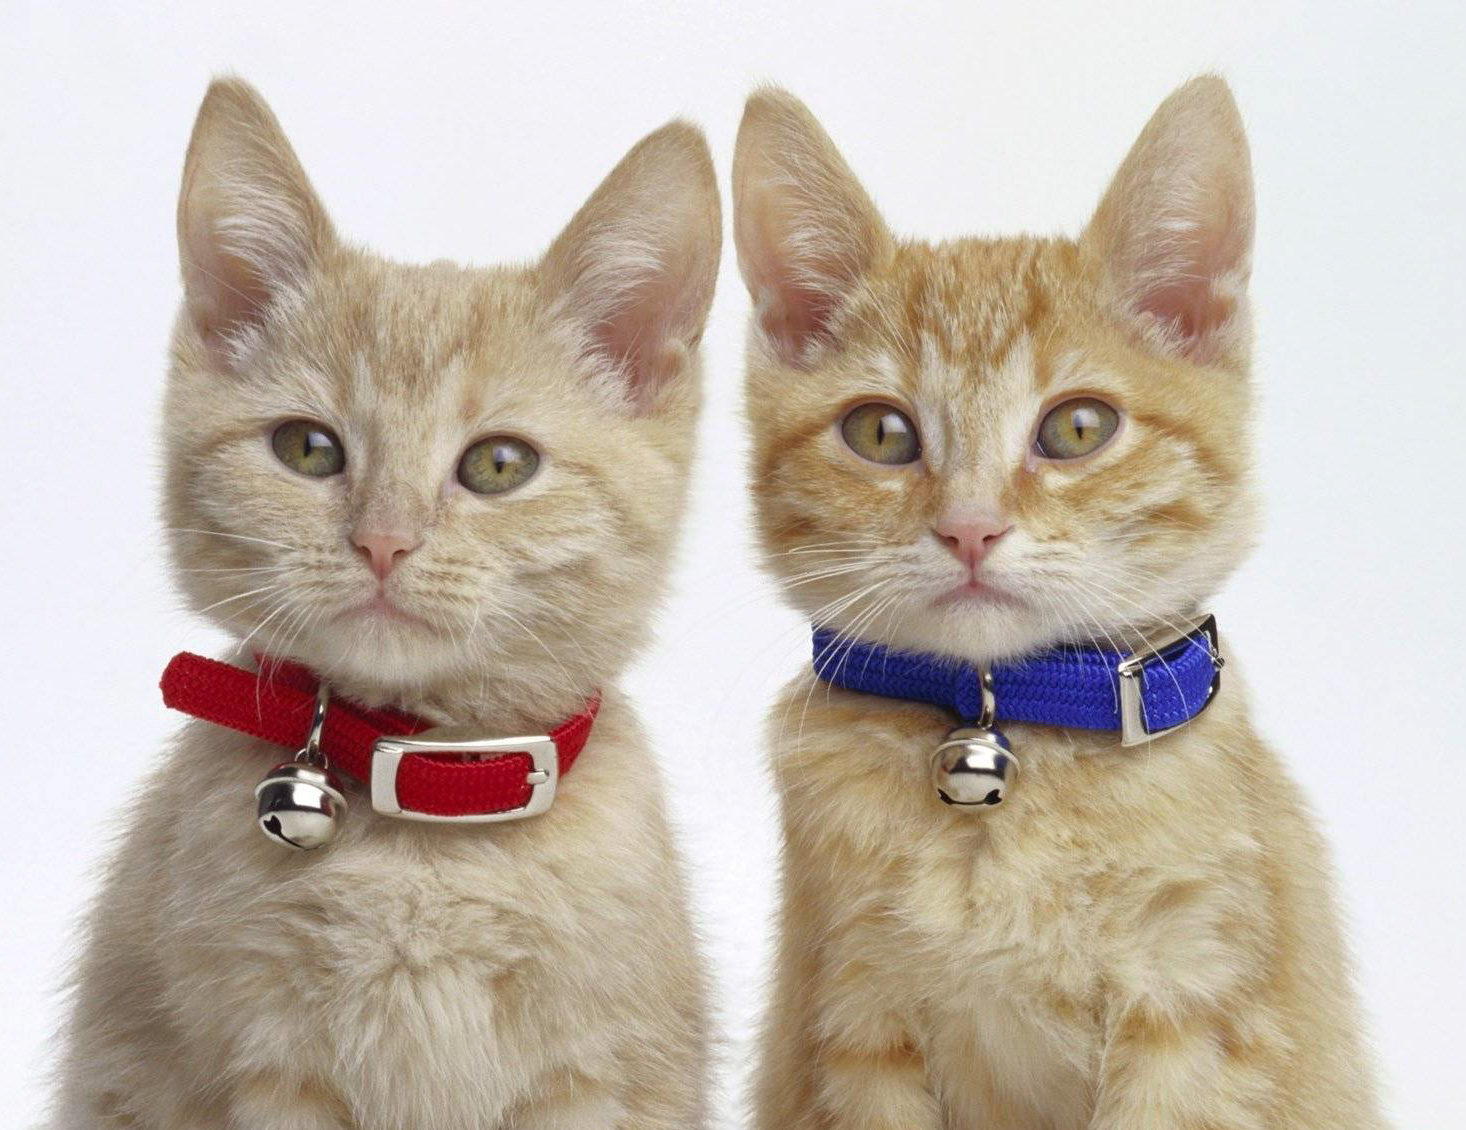 Brother and sister cats - who is the more affectionate?